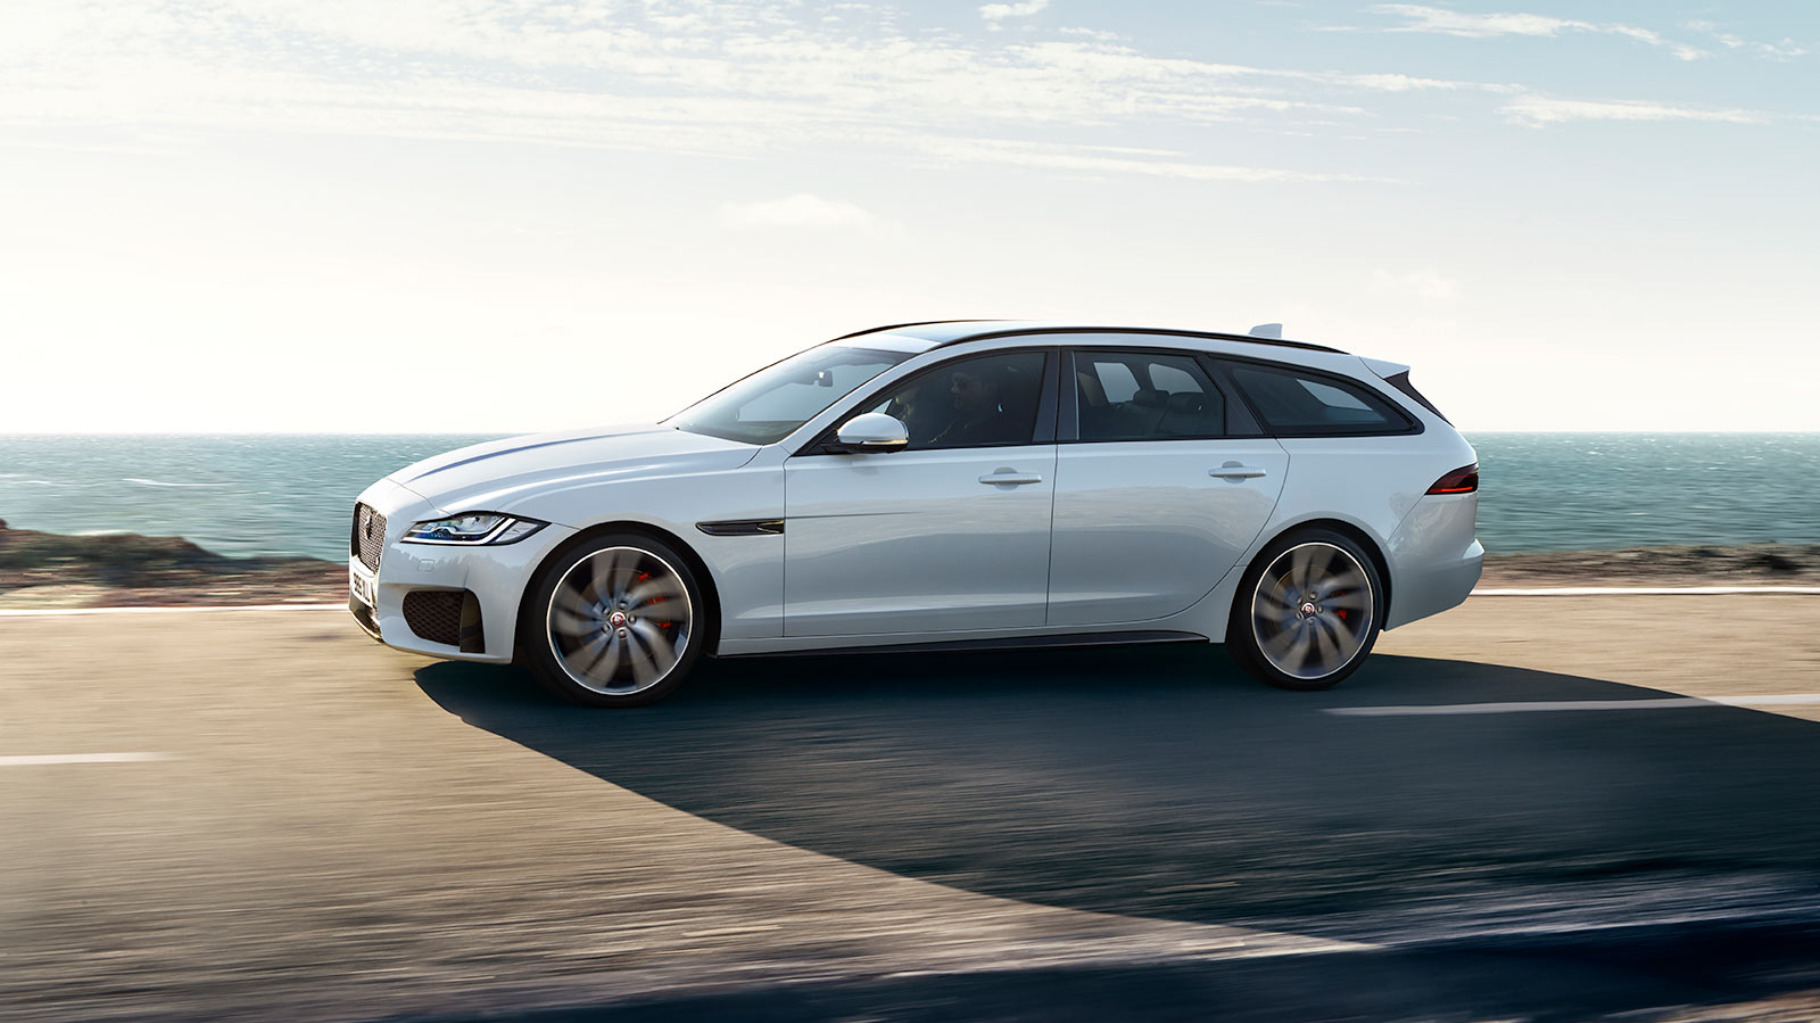 A Jaguar XF Sportbrake driving along a road.